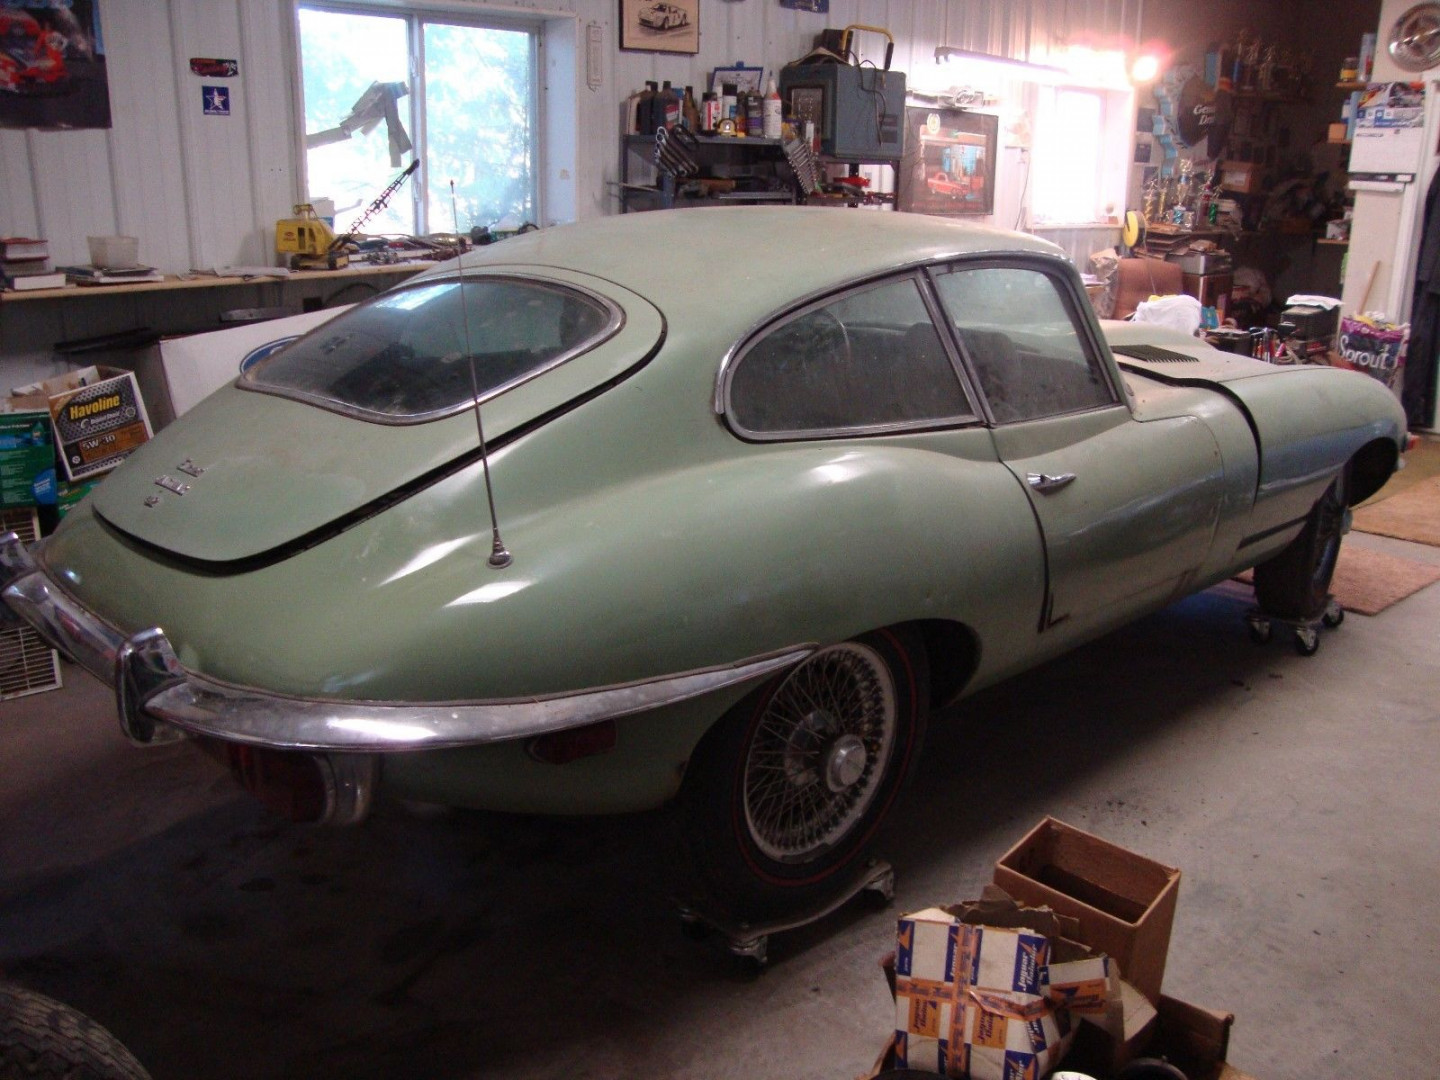 Jaguar E-Type XKE 1969 4.2 mk2 FHC manual VERY RARE !!! - MBB Collection